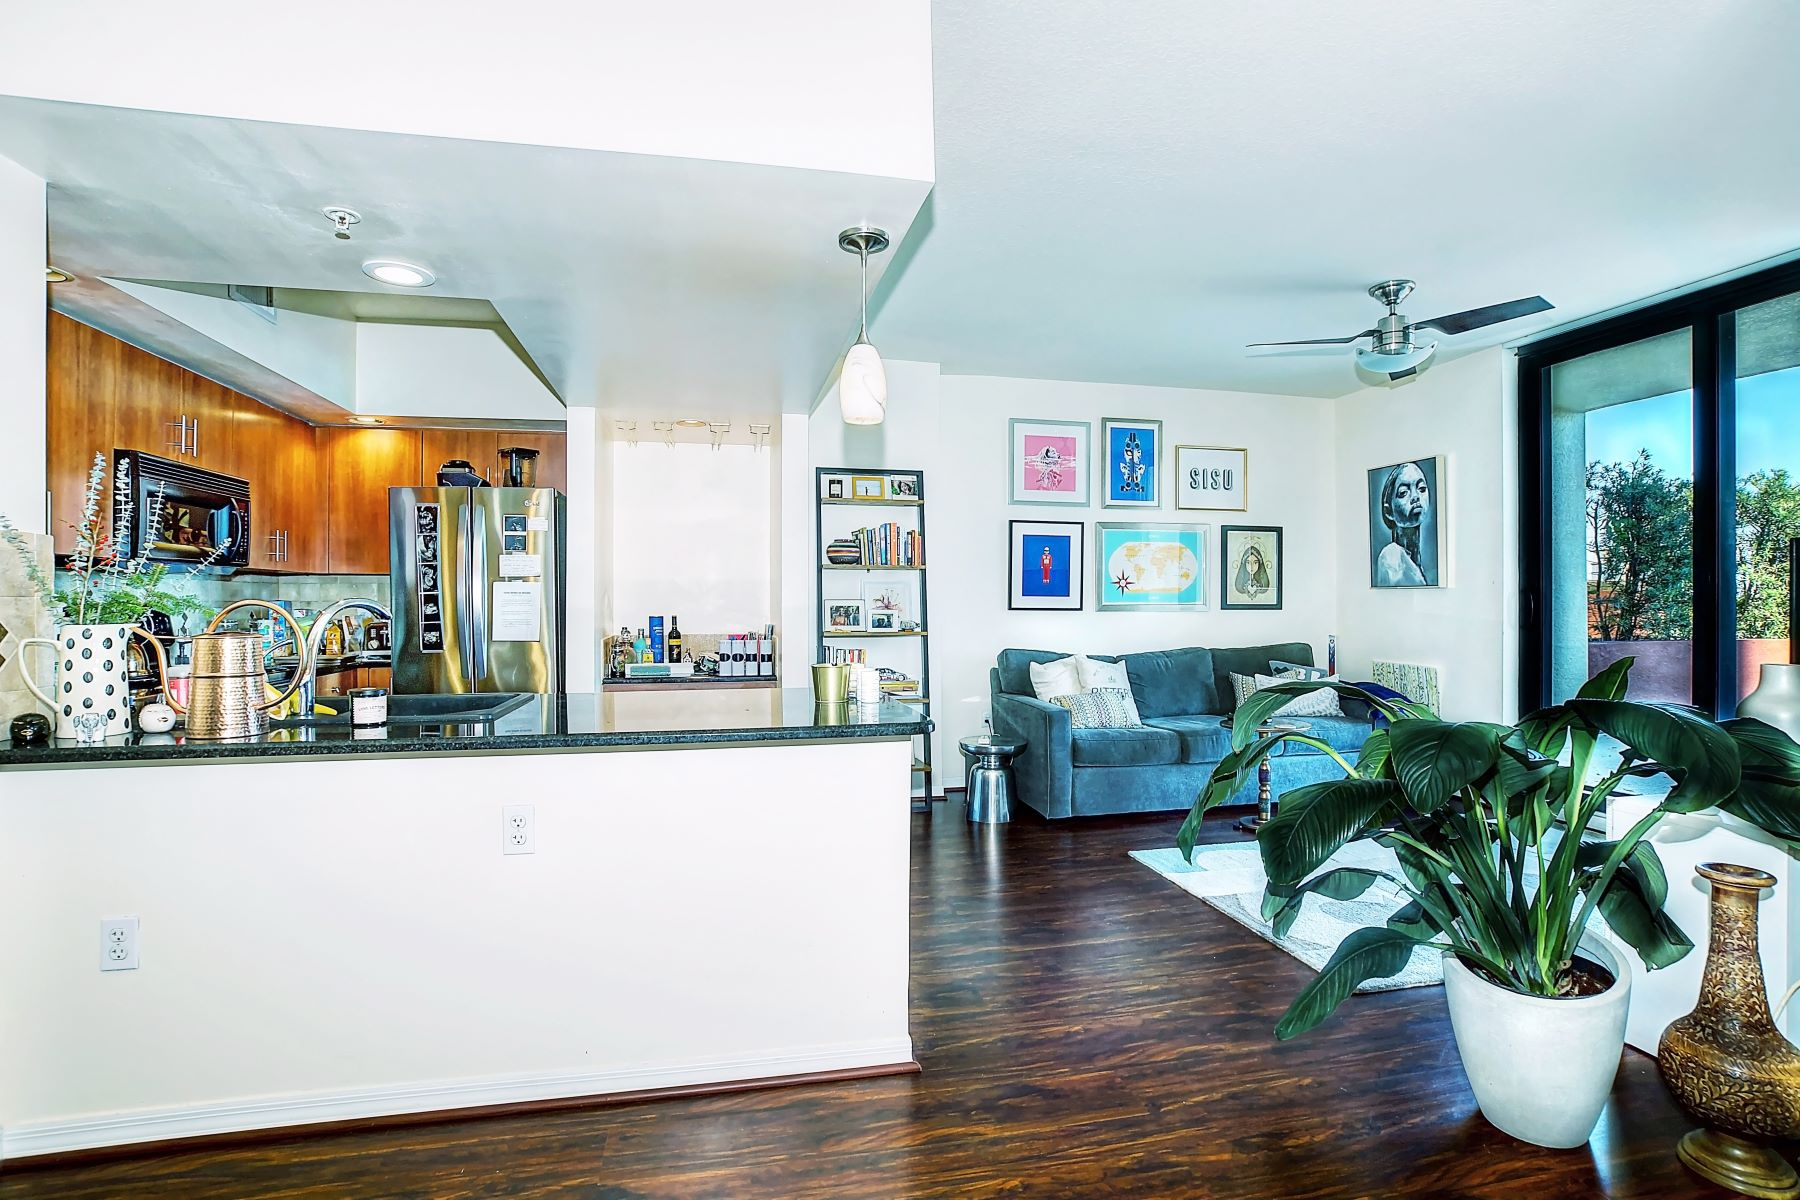 Single Family Home for Sale at 100 N Federal #524 100 N Federal 524, Fort Lauderdale, Florida, 33301 United States